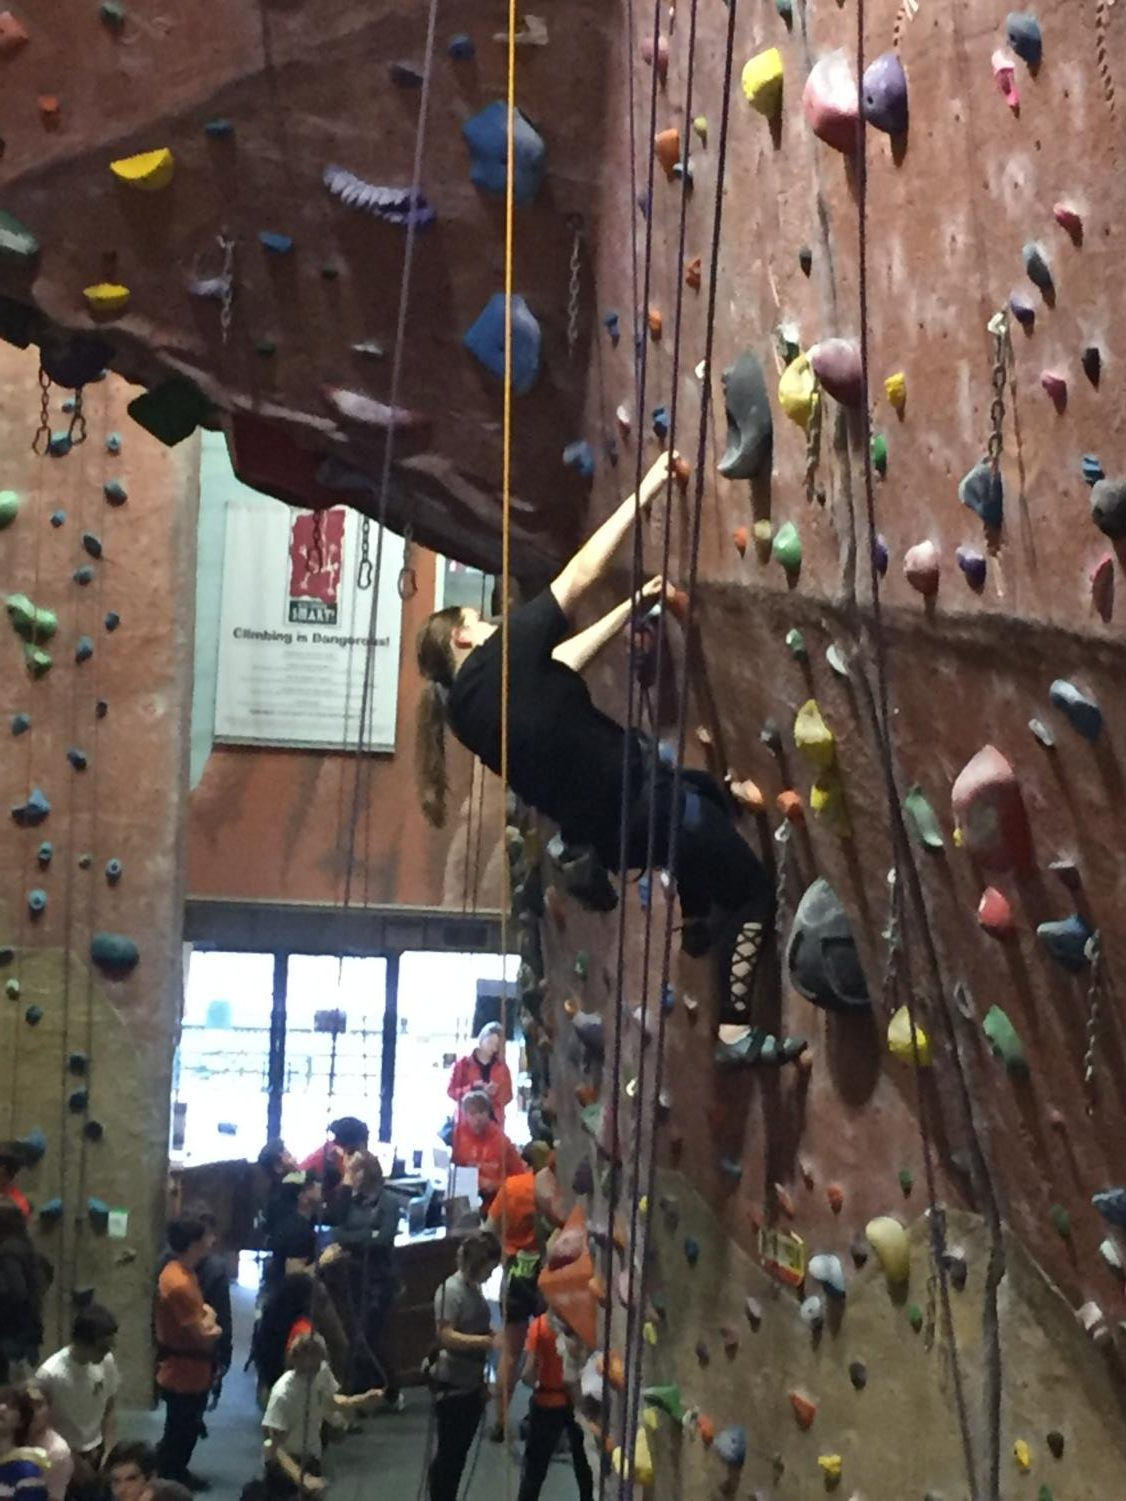 Cassie Tarrant is focused on completing a top-rope route for a school competition at the Upper Limits Rock Climbing Gym in downtown St. Louis.